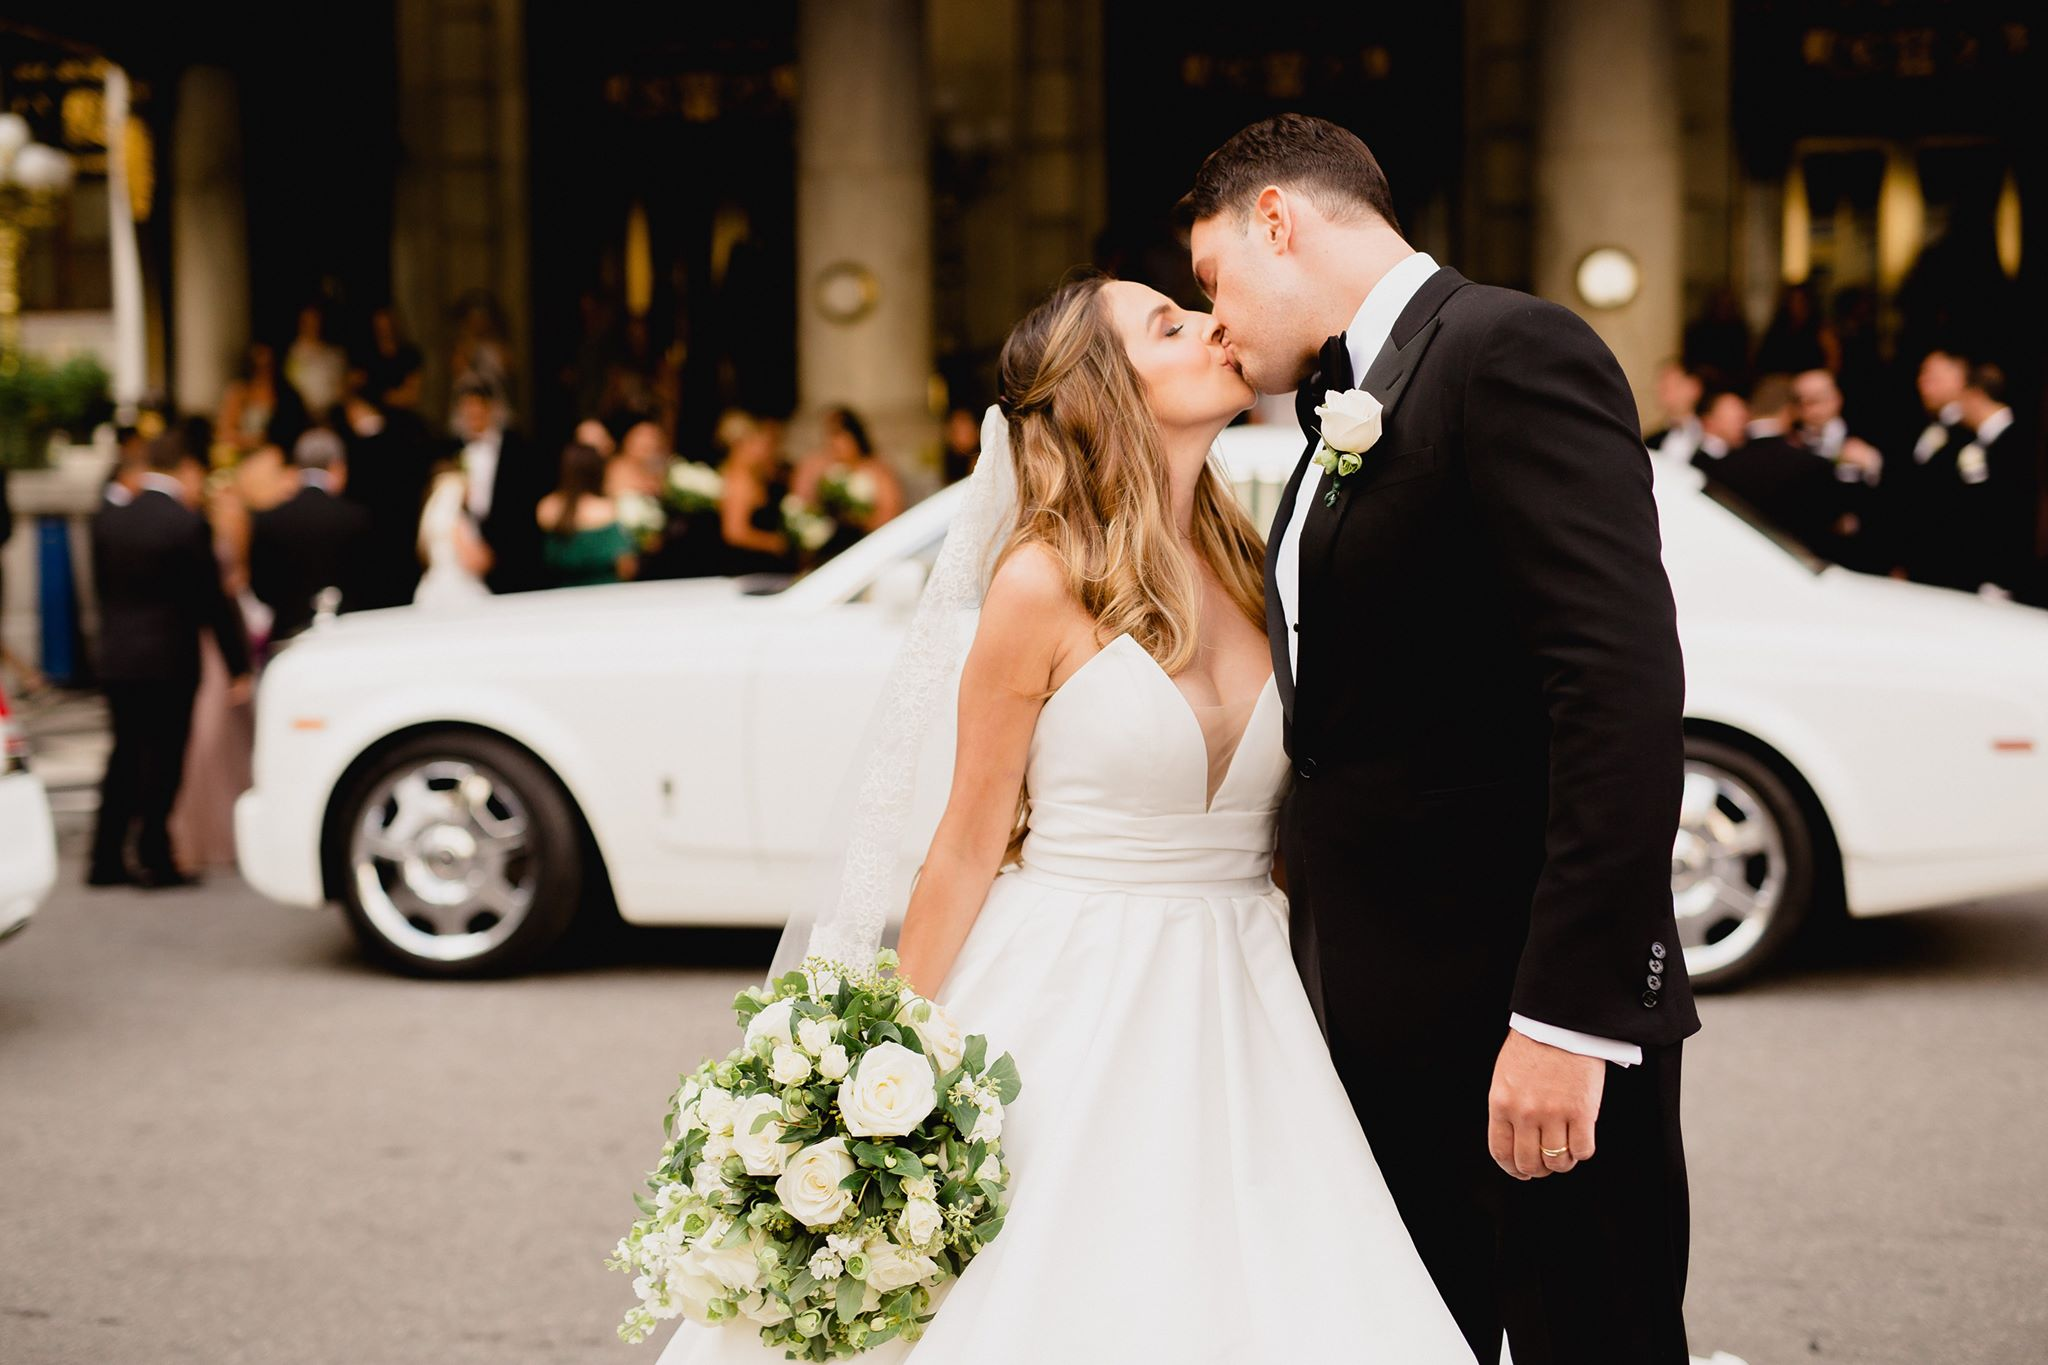 New York City Wedding Photographer and Destination Events, Susan Shek Photography